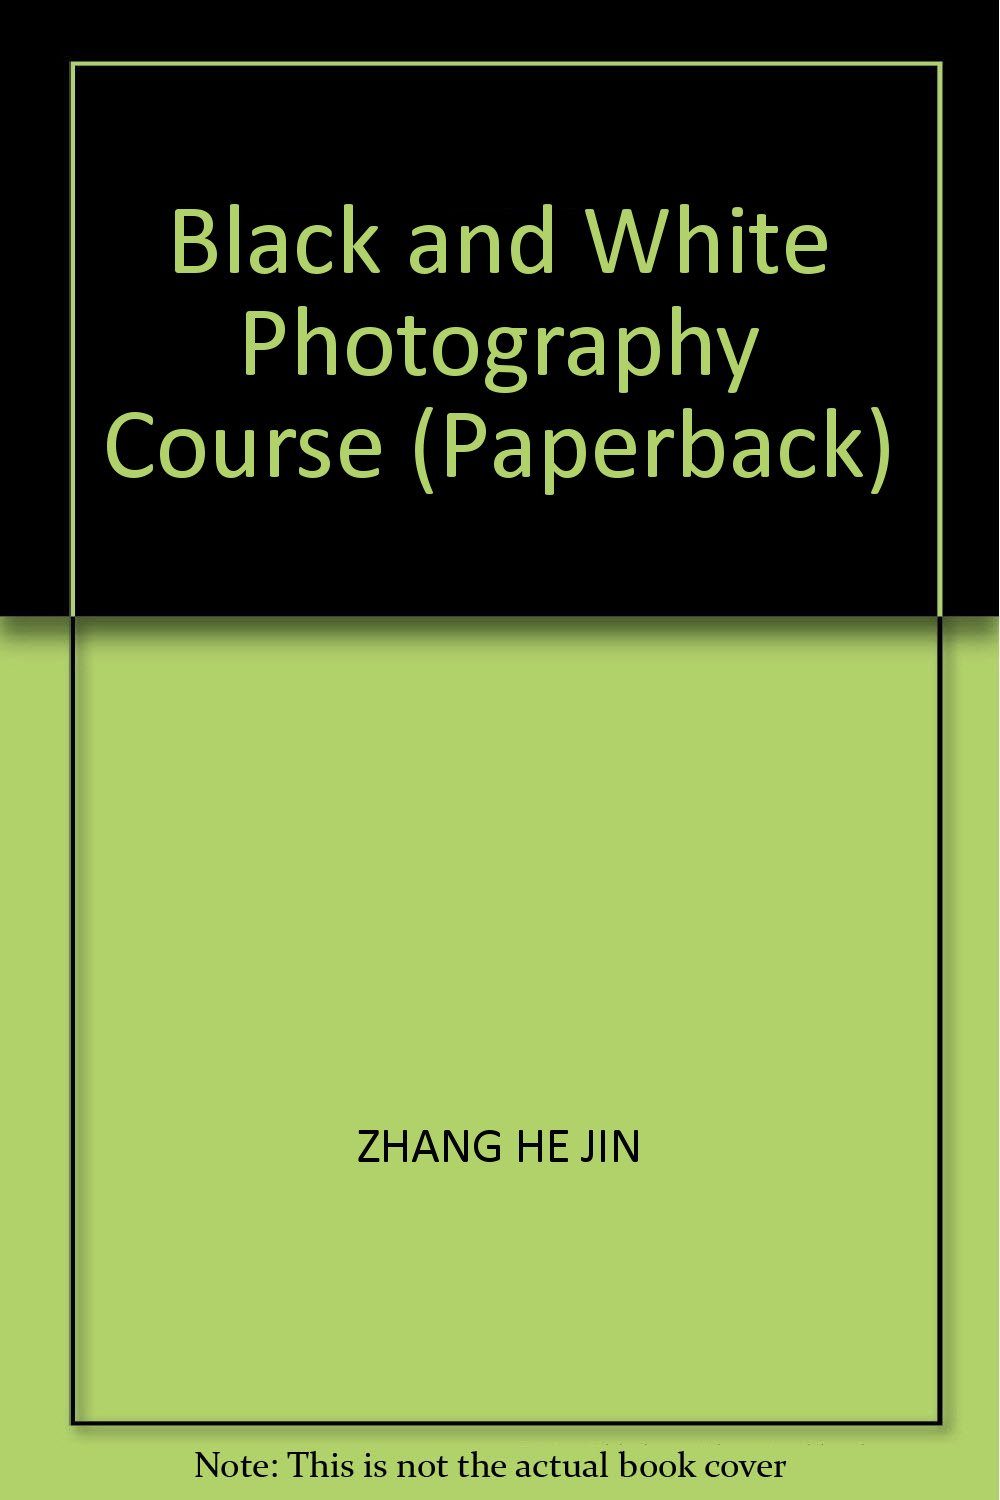 Black and White Photography Course (Paperback)